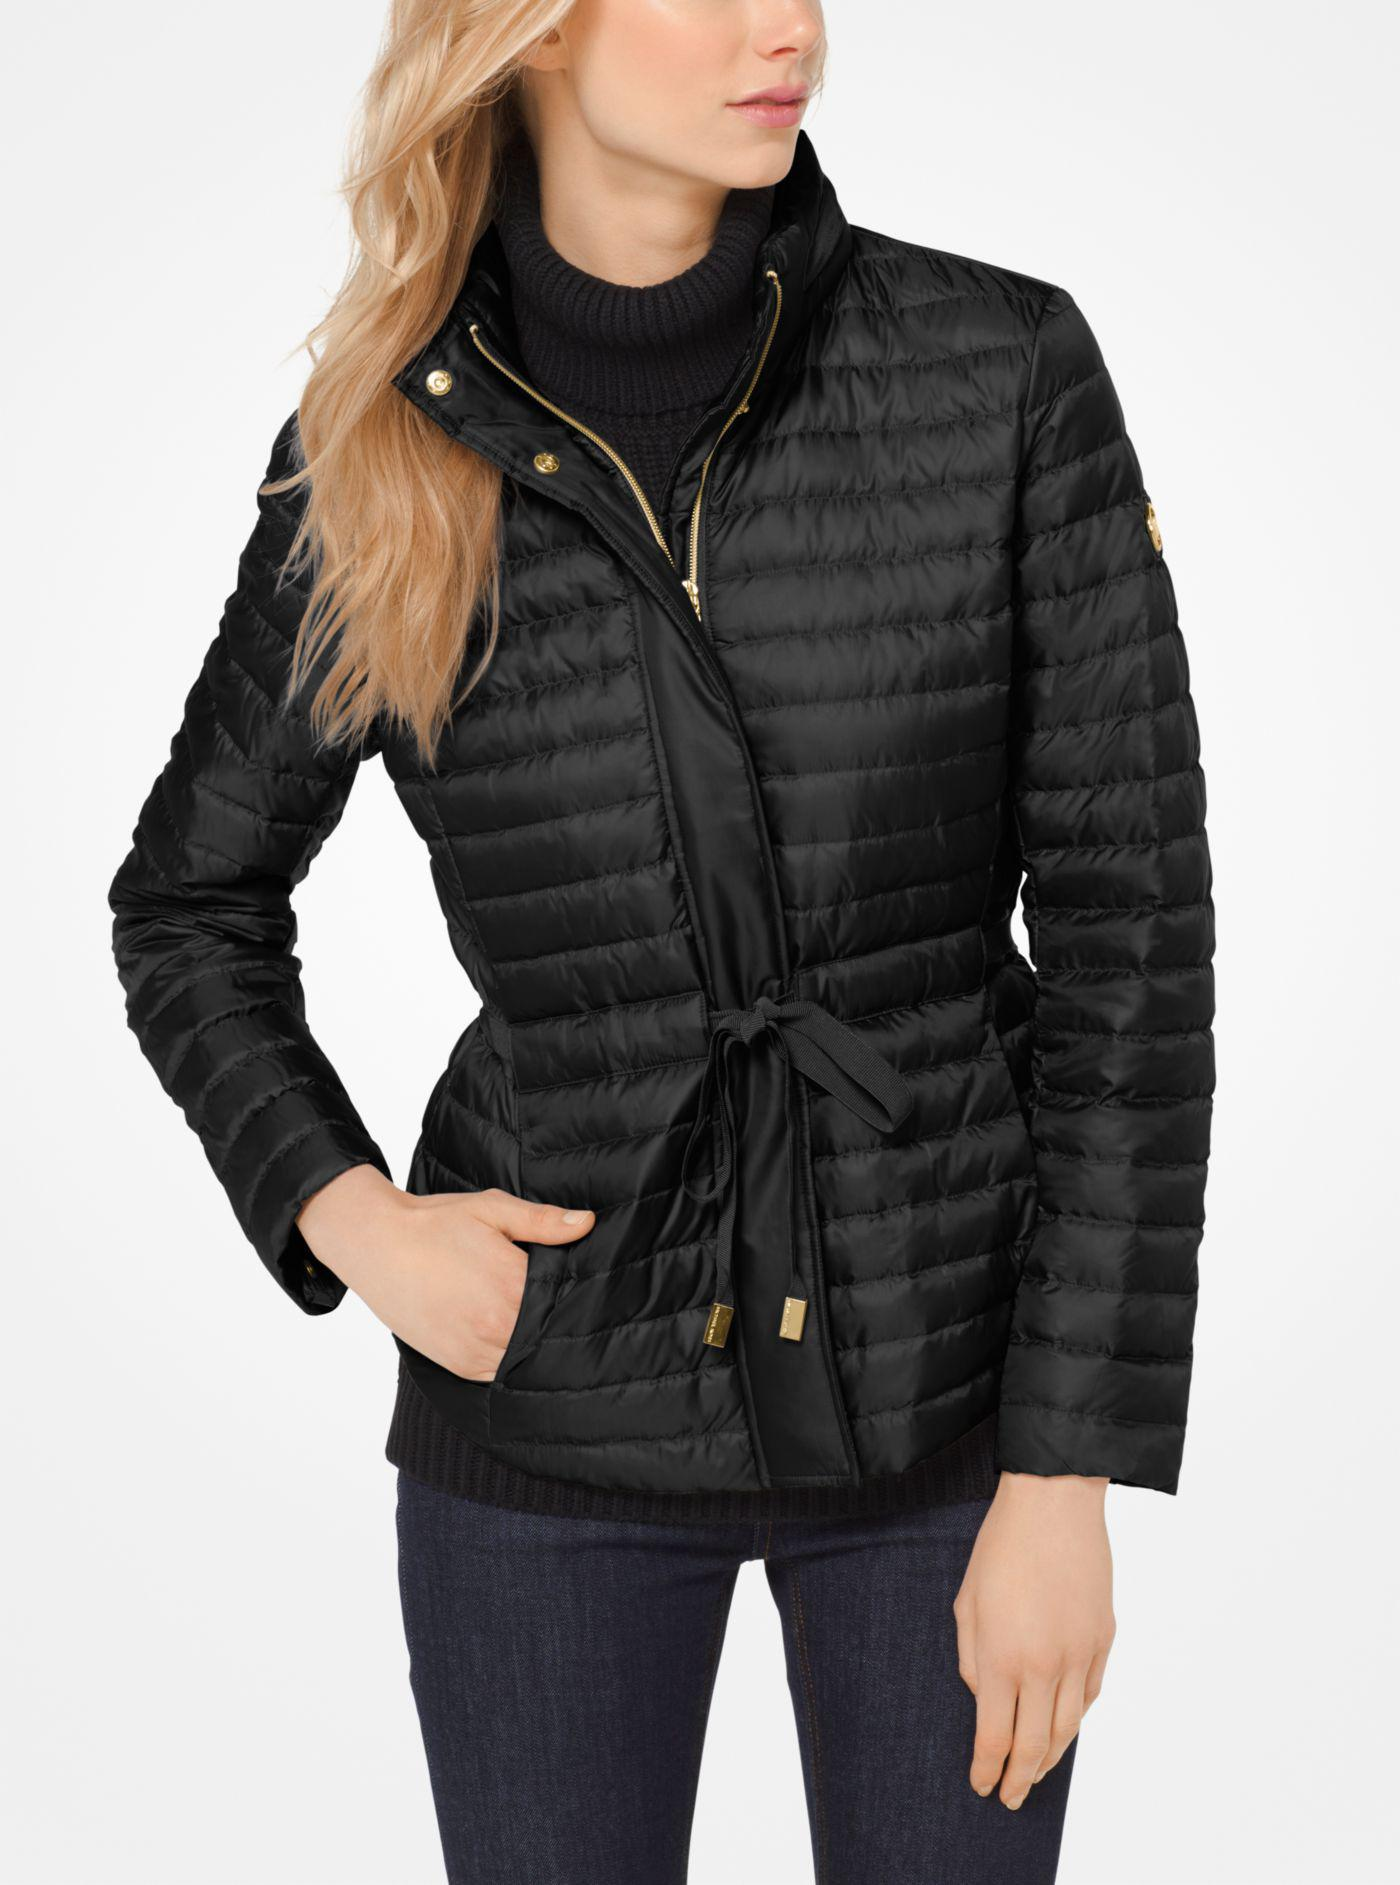 71c2aa02fc7b Michael Kors Packable Nylon Puffer Jacket in Black - Lyst